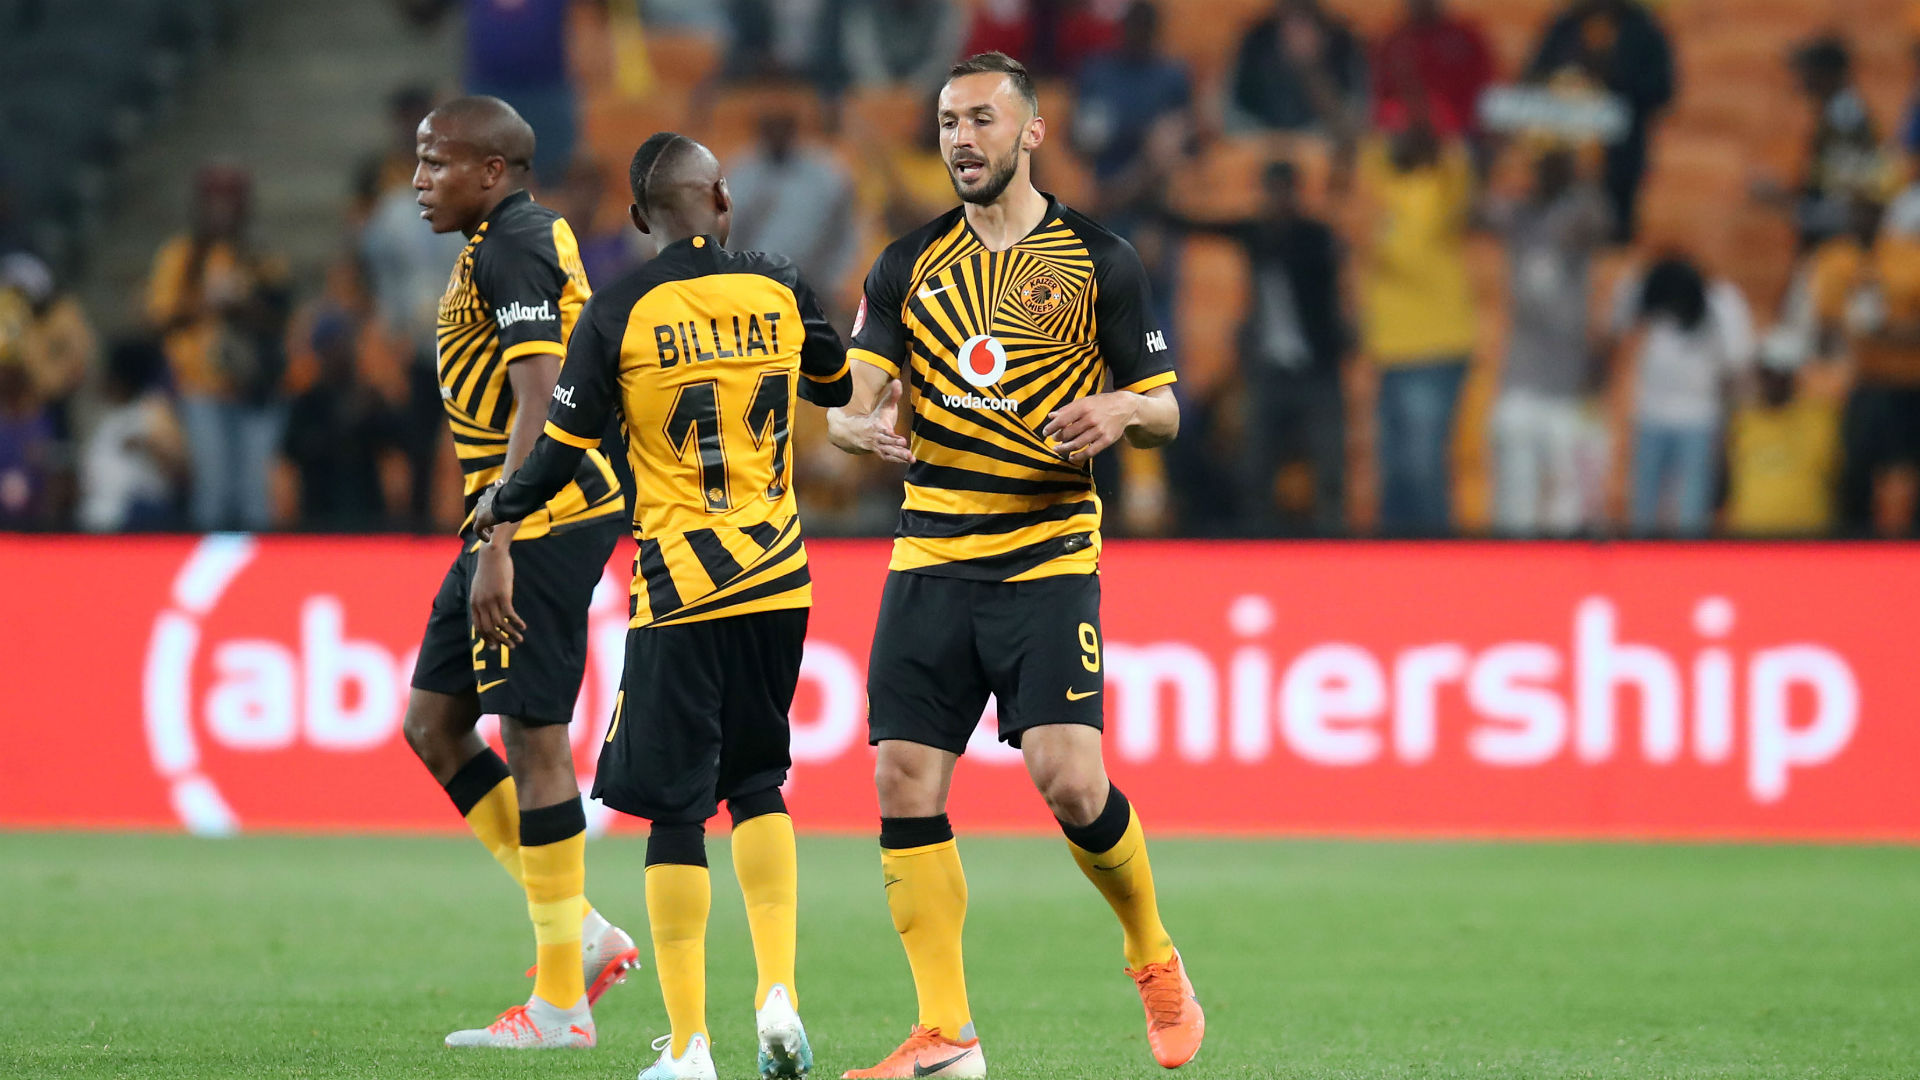 Kaizer Chiefs can be strong PSL title contenders - Nurkovic